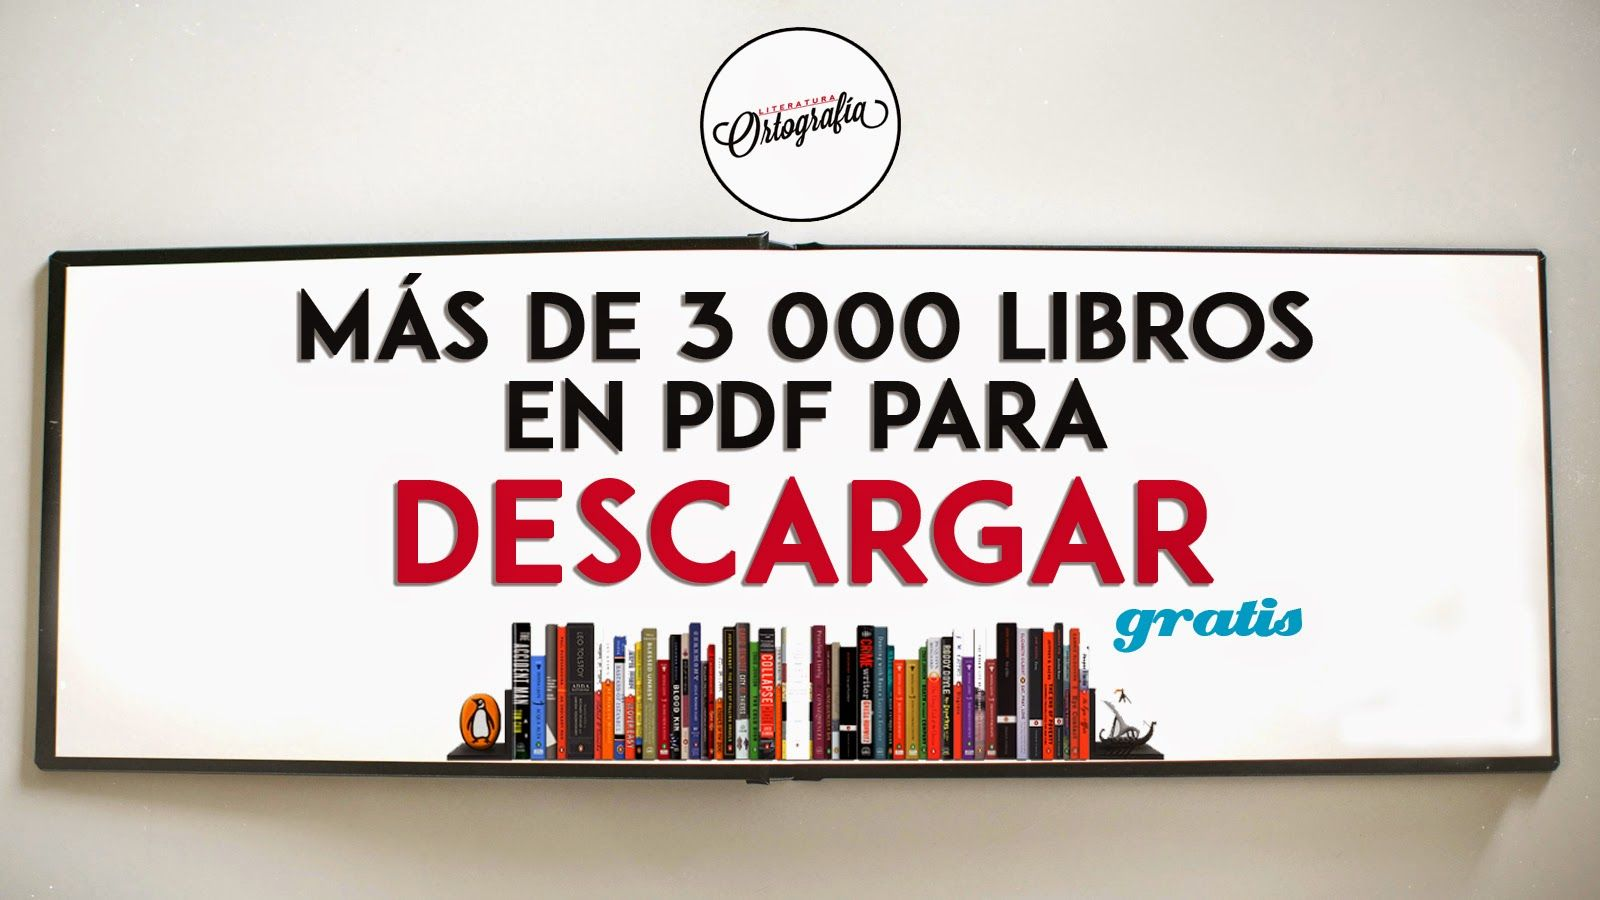 Descargar Libros Electronicos Gratis Ebook Ortografía And Literatura Libros Pdf Textos Books